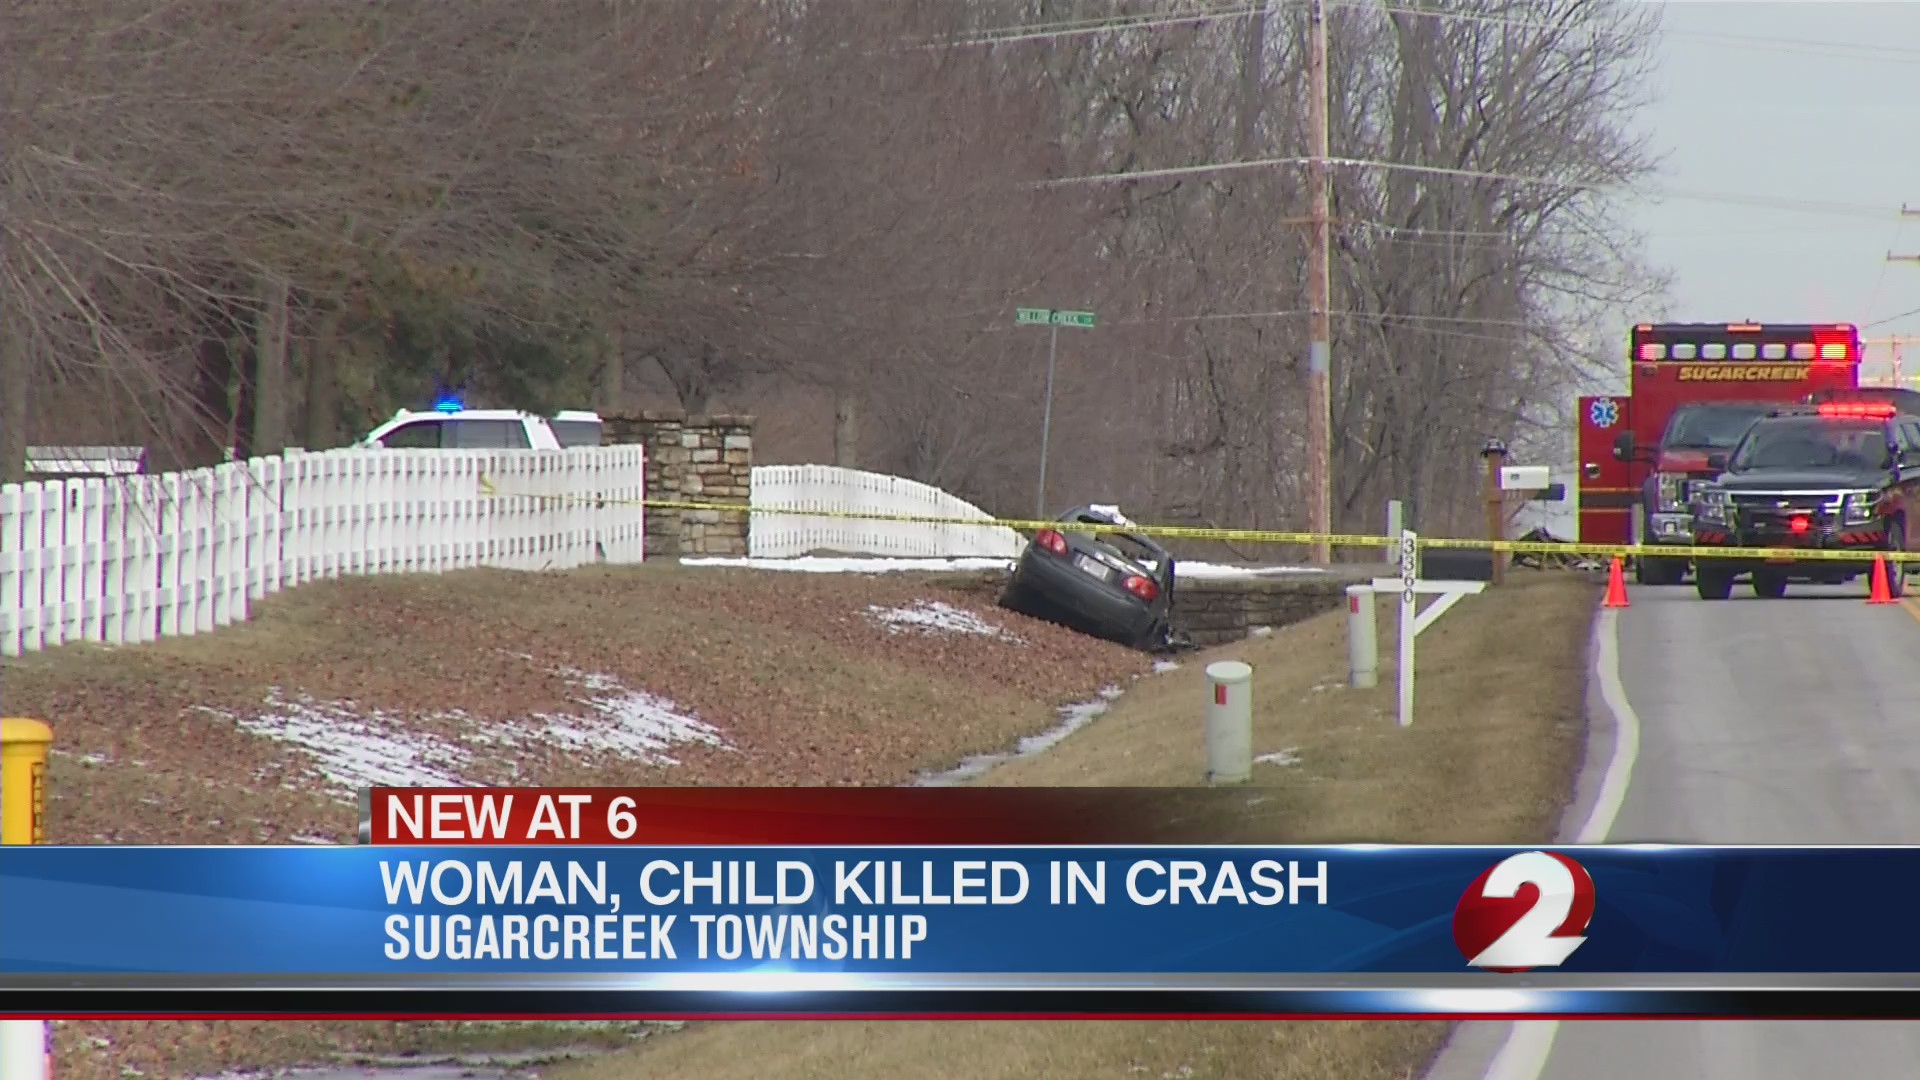 Woman and child killed in Sugarcreek Township crash